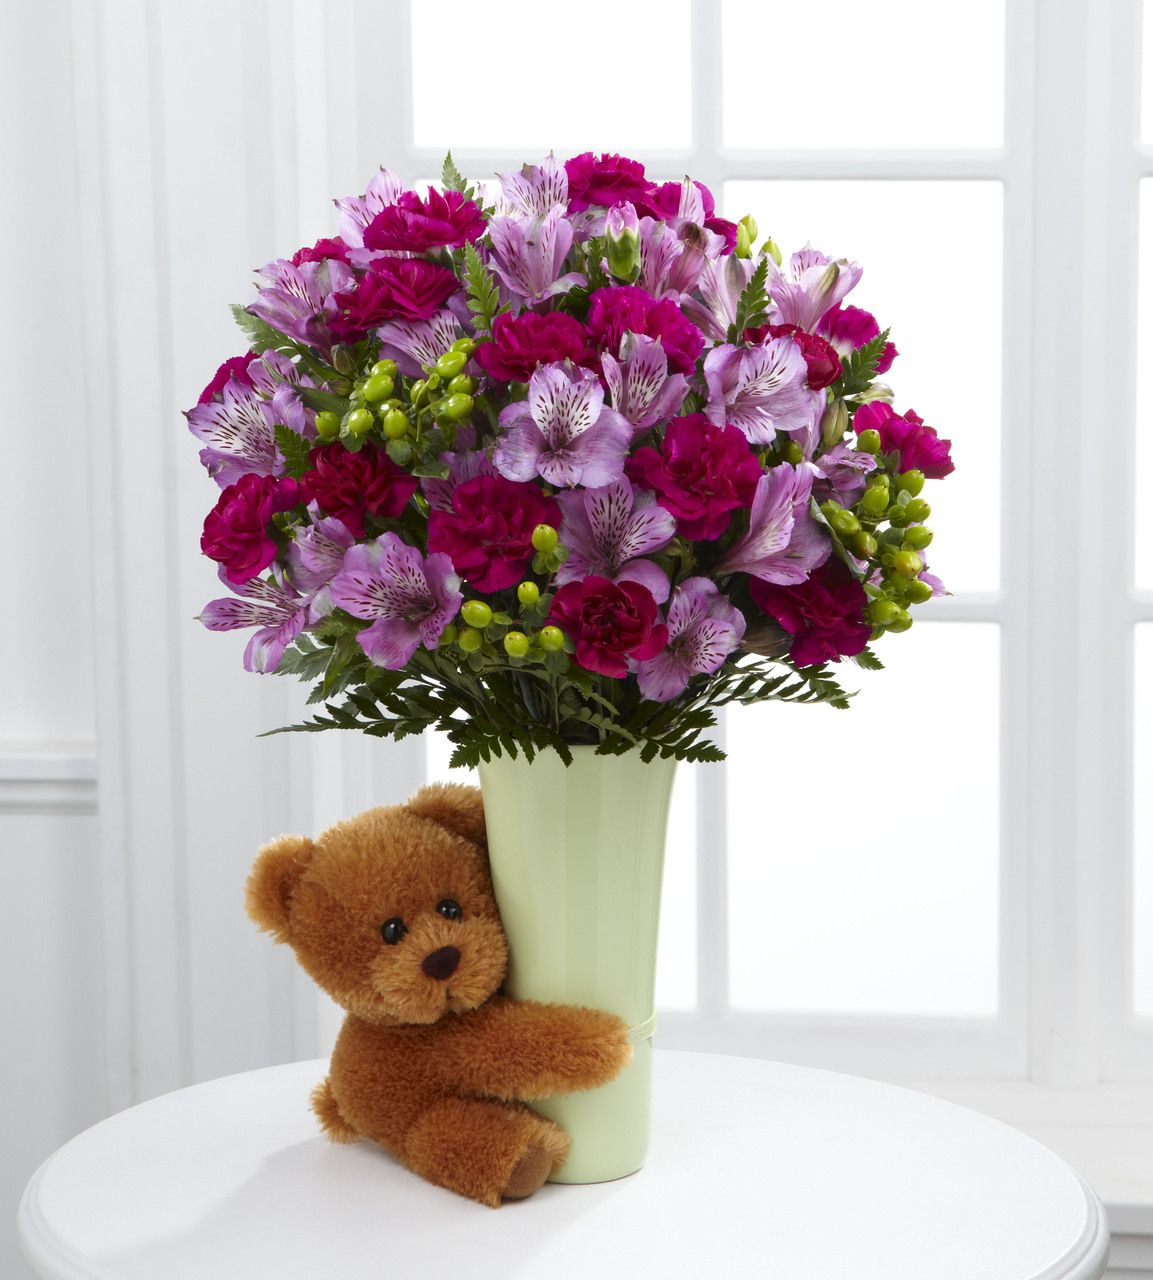 Flowers funeral flowers etiquette doing the right thing flowers funeral flowers etiquette doing the right thing izmirmasajfo Image collections